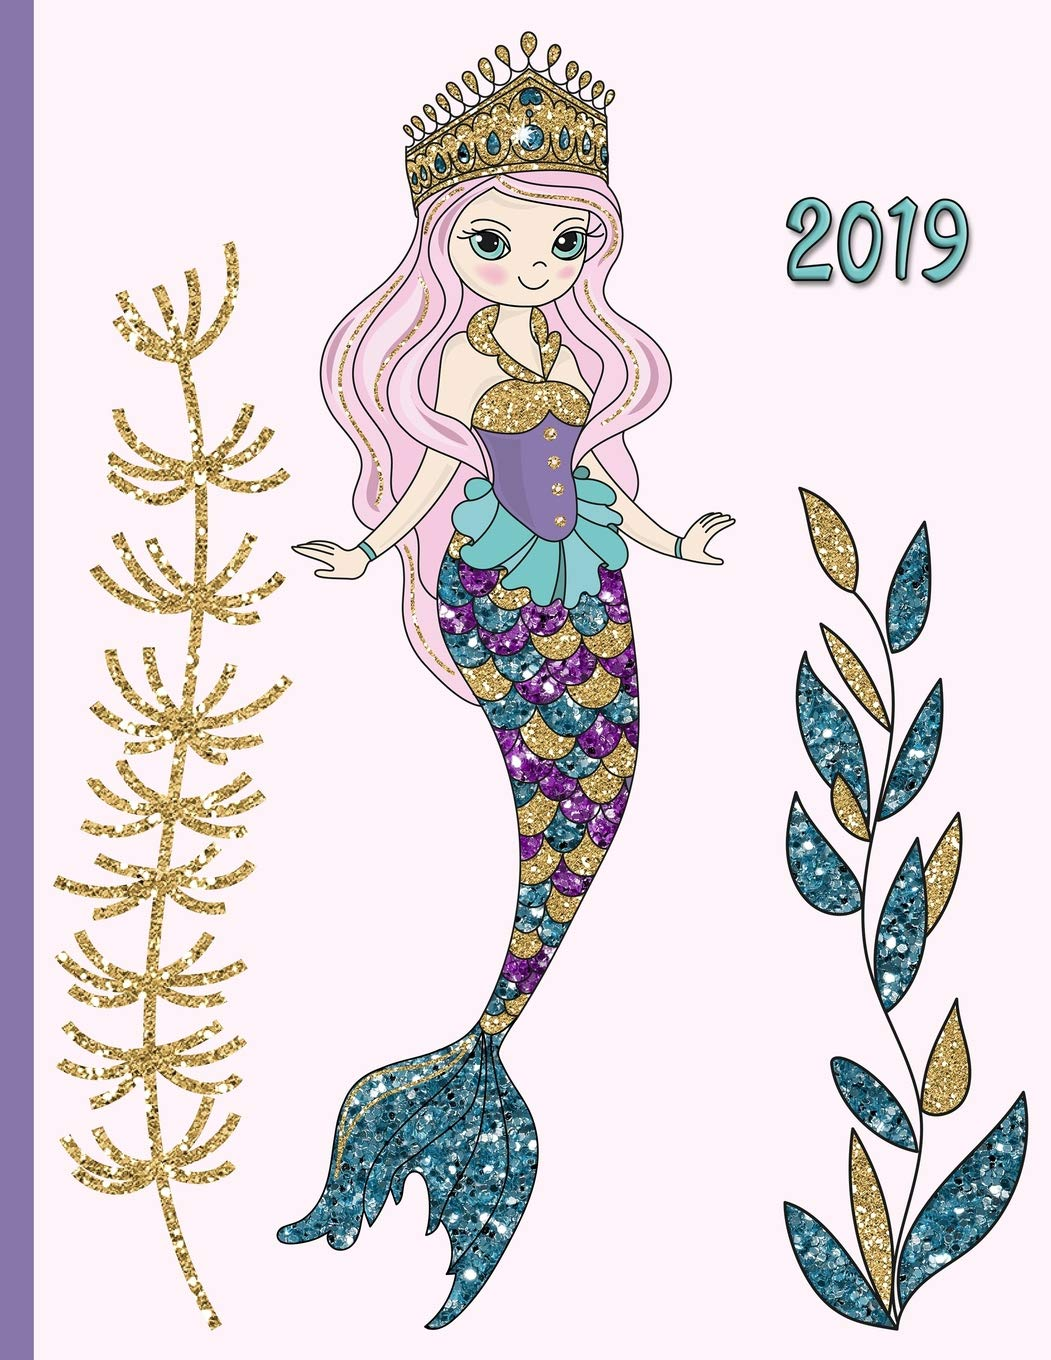 Glitter Mermaid in the Sea with Seaweed Kelp and Colorful Fish: 2019.